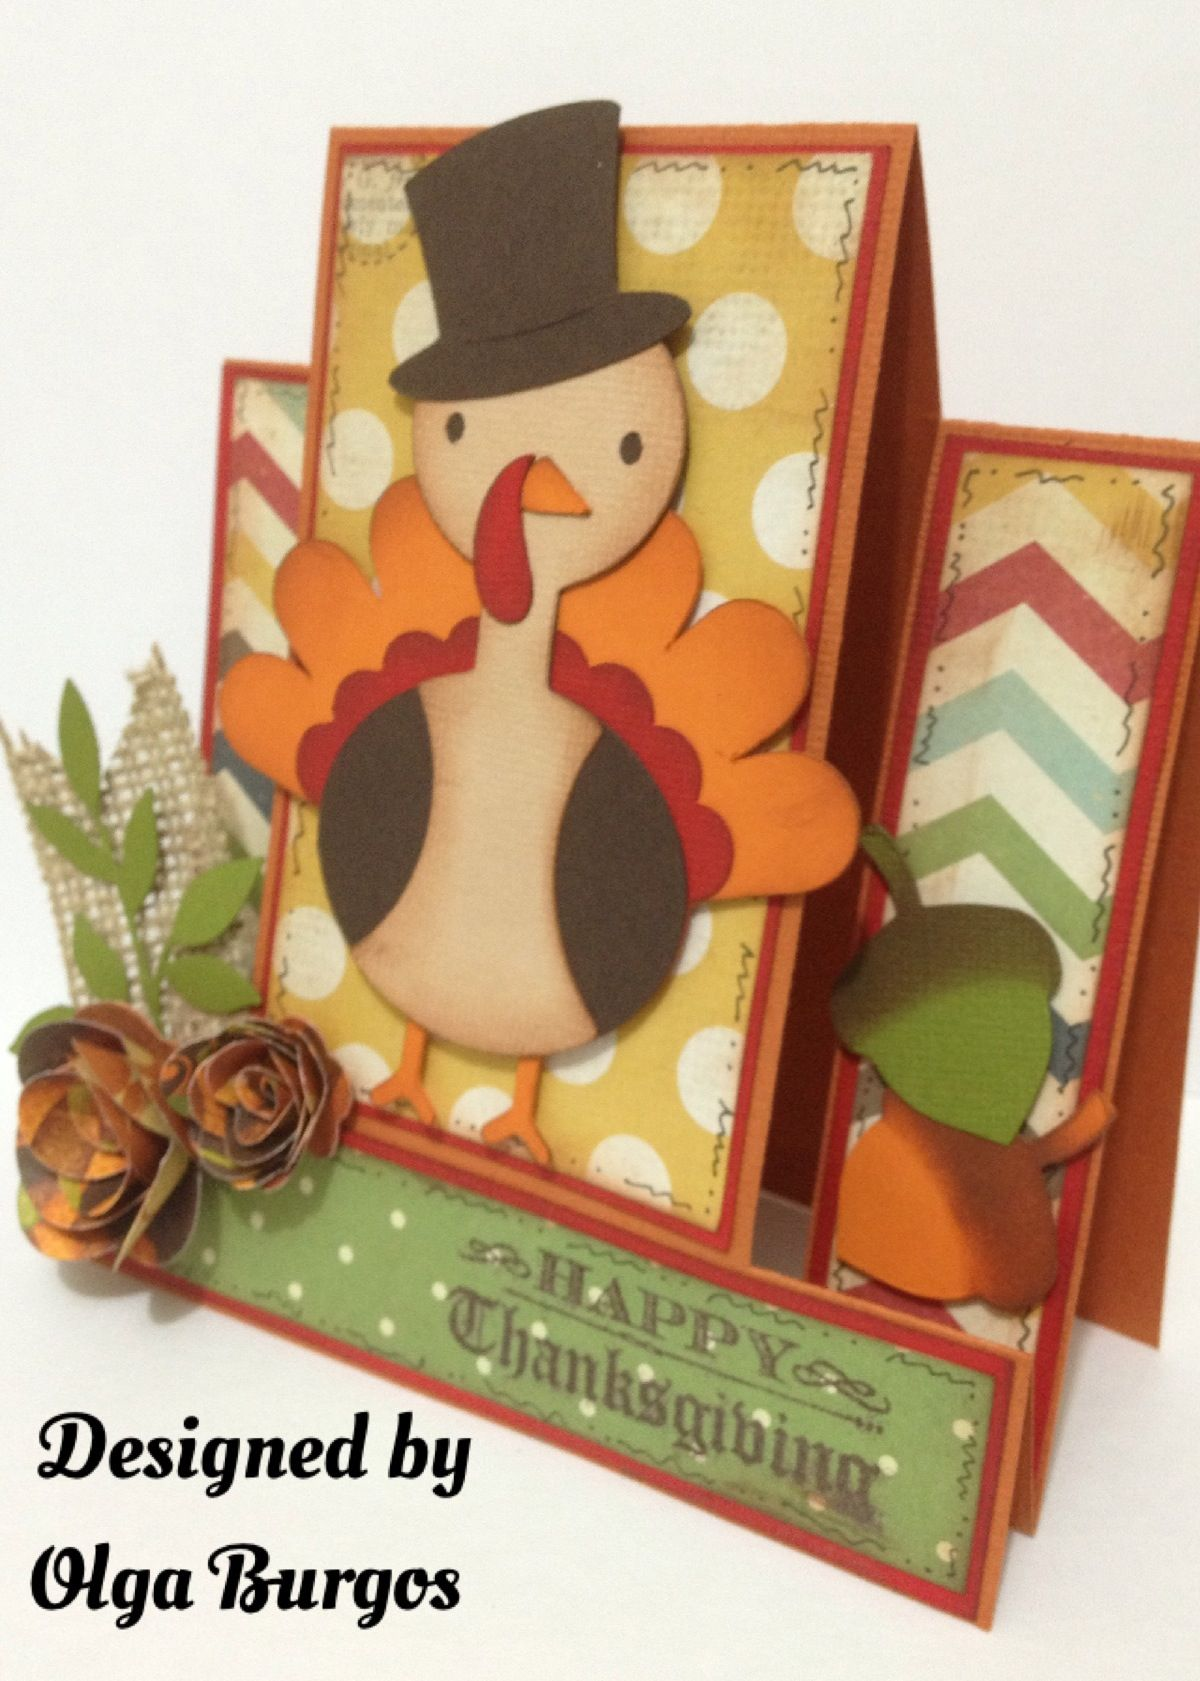 Diy thanksgiving paper decor - Find This Pin And More On Fall Cards And Decor